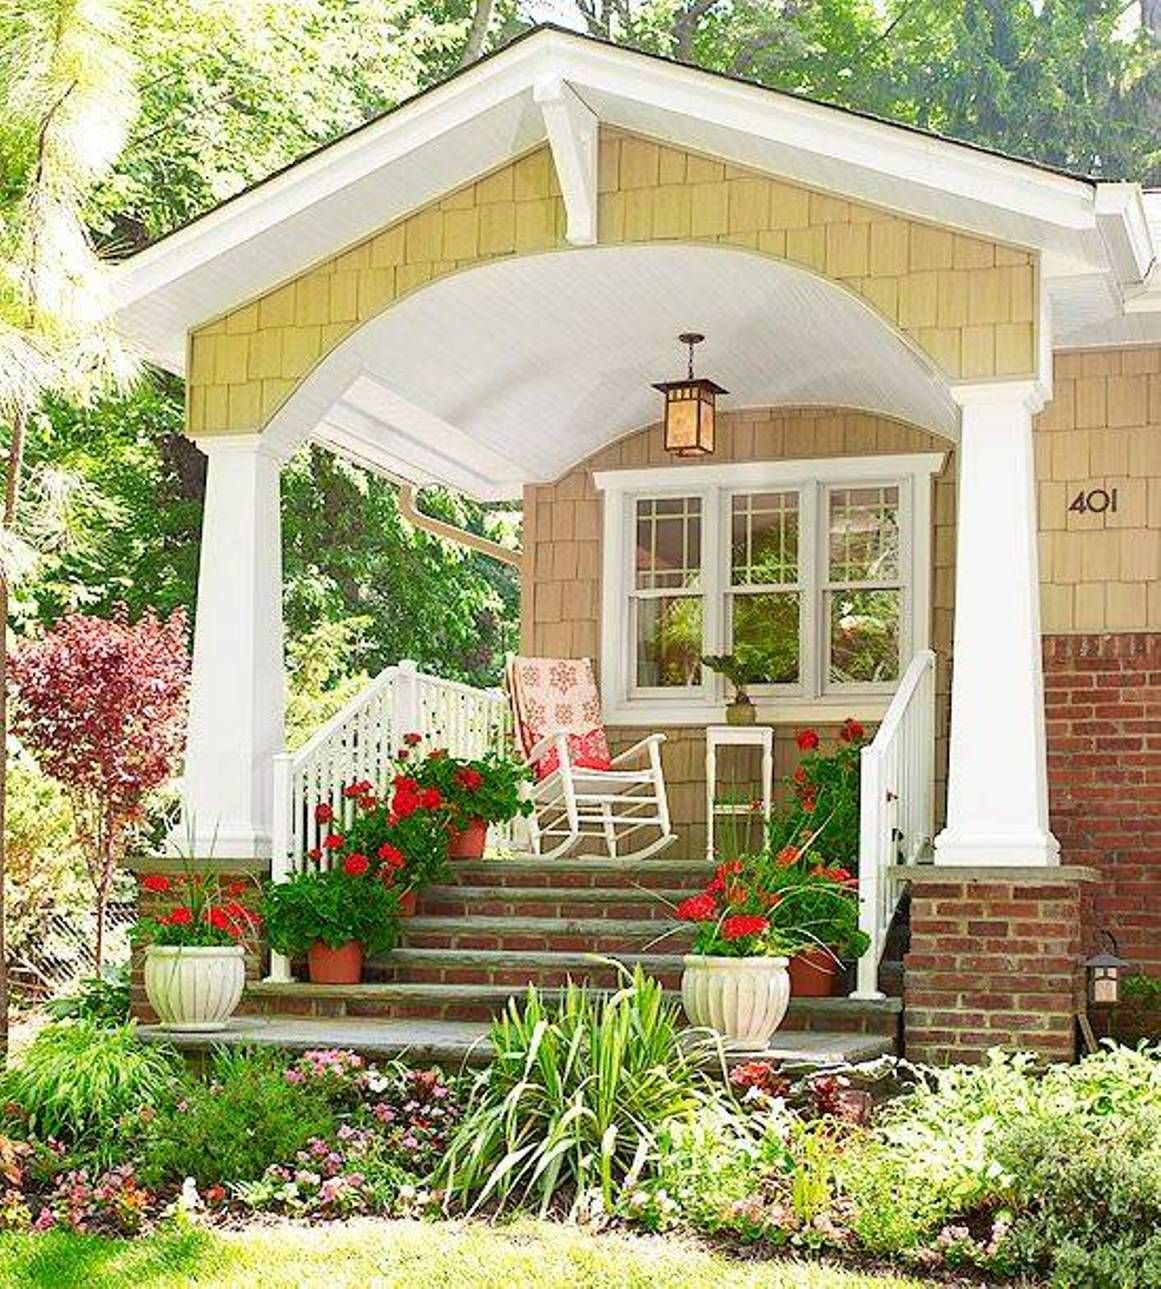 Landscaping and outdoor building home front porch for Brick porch designs for houses